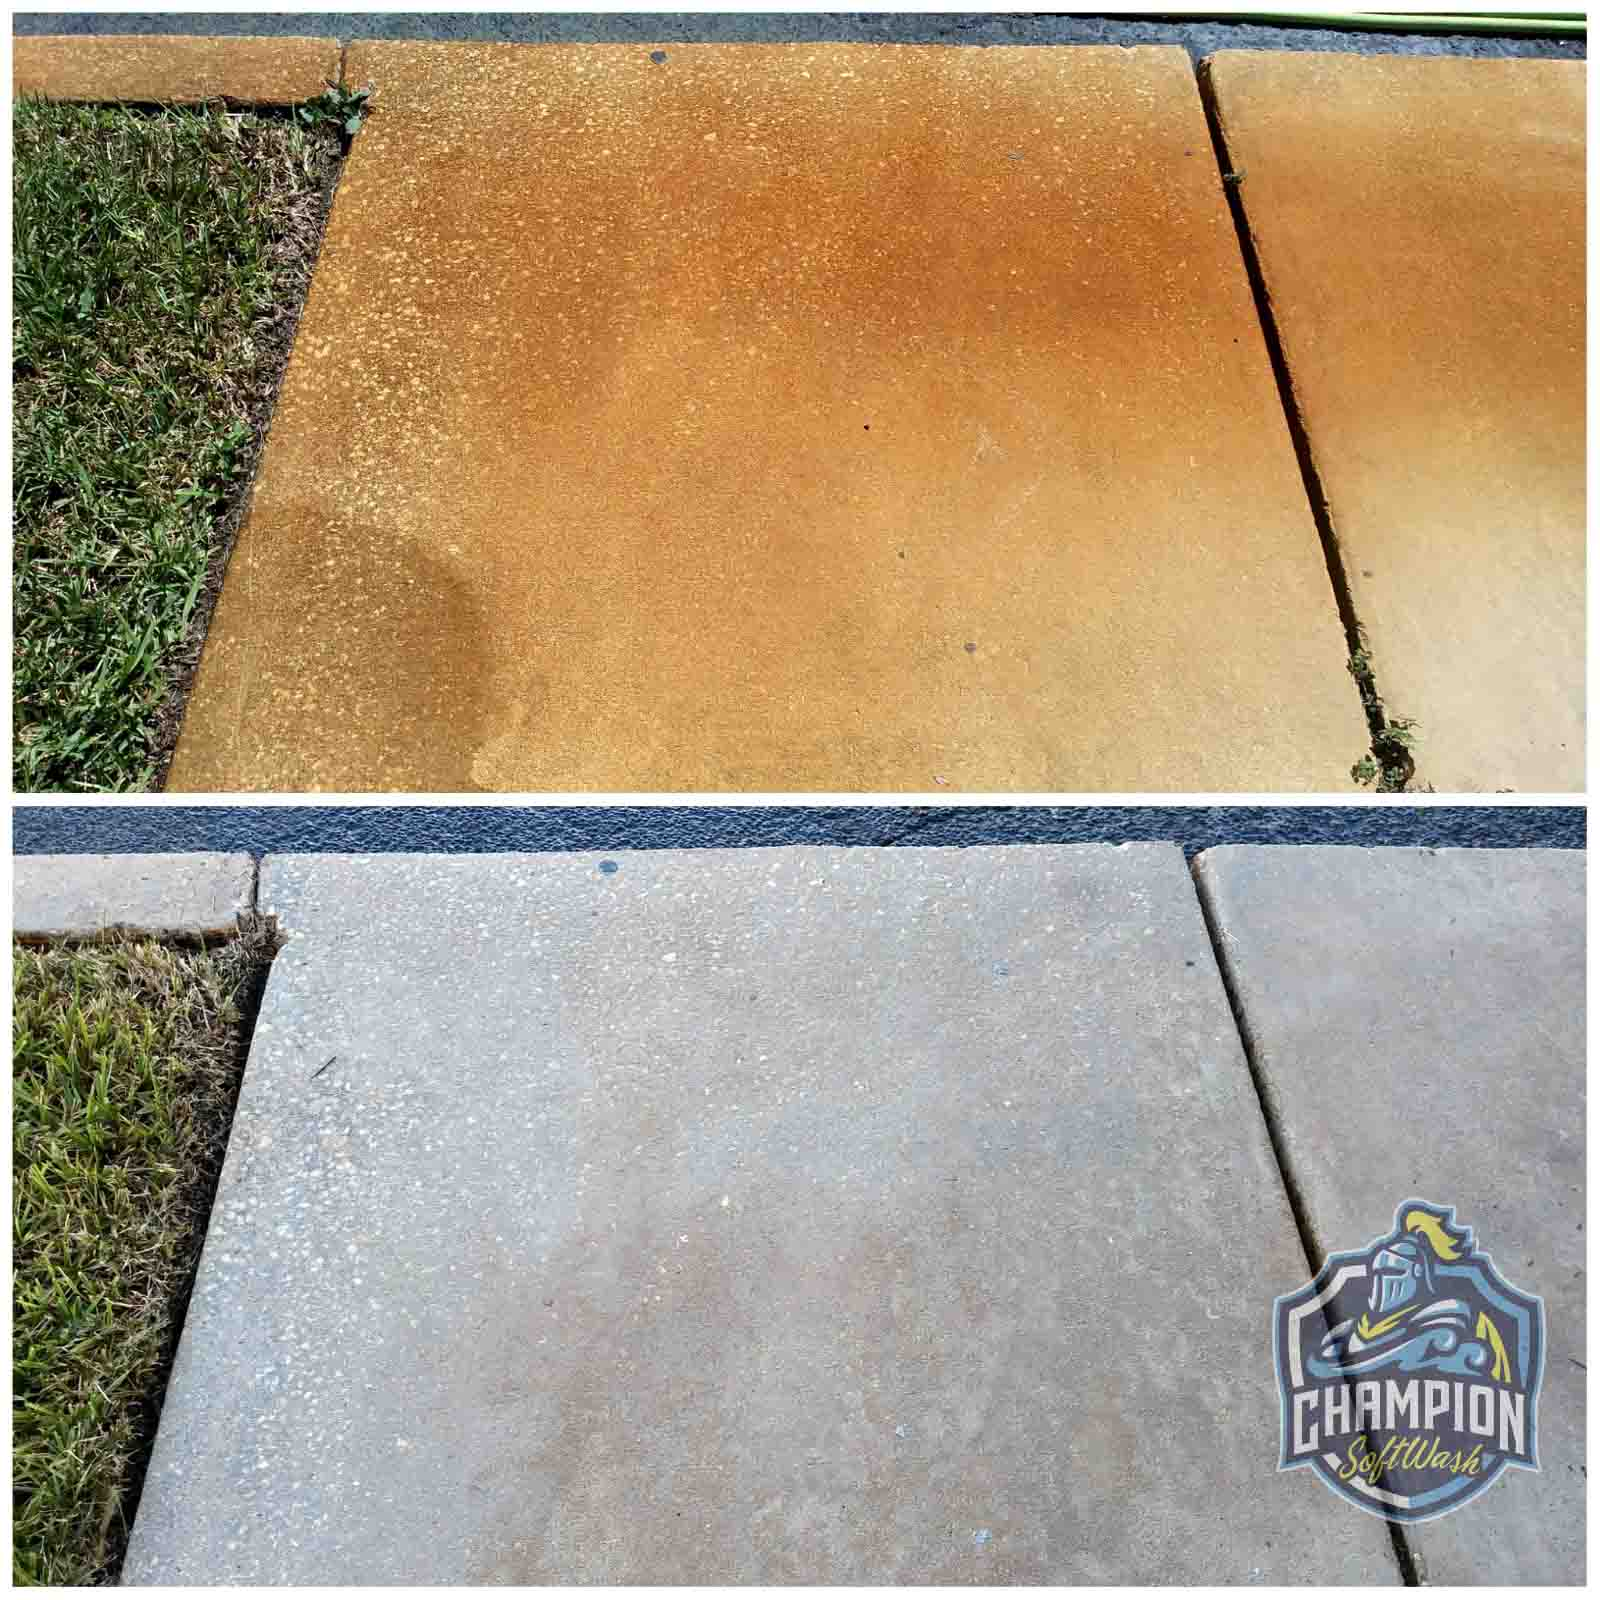 Irrigation iron rust removal on sidewalk in Altamonte Springs Florida